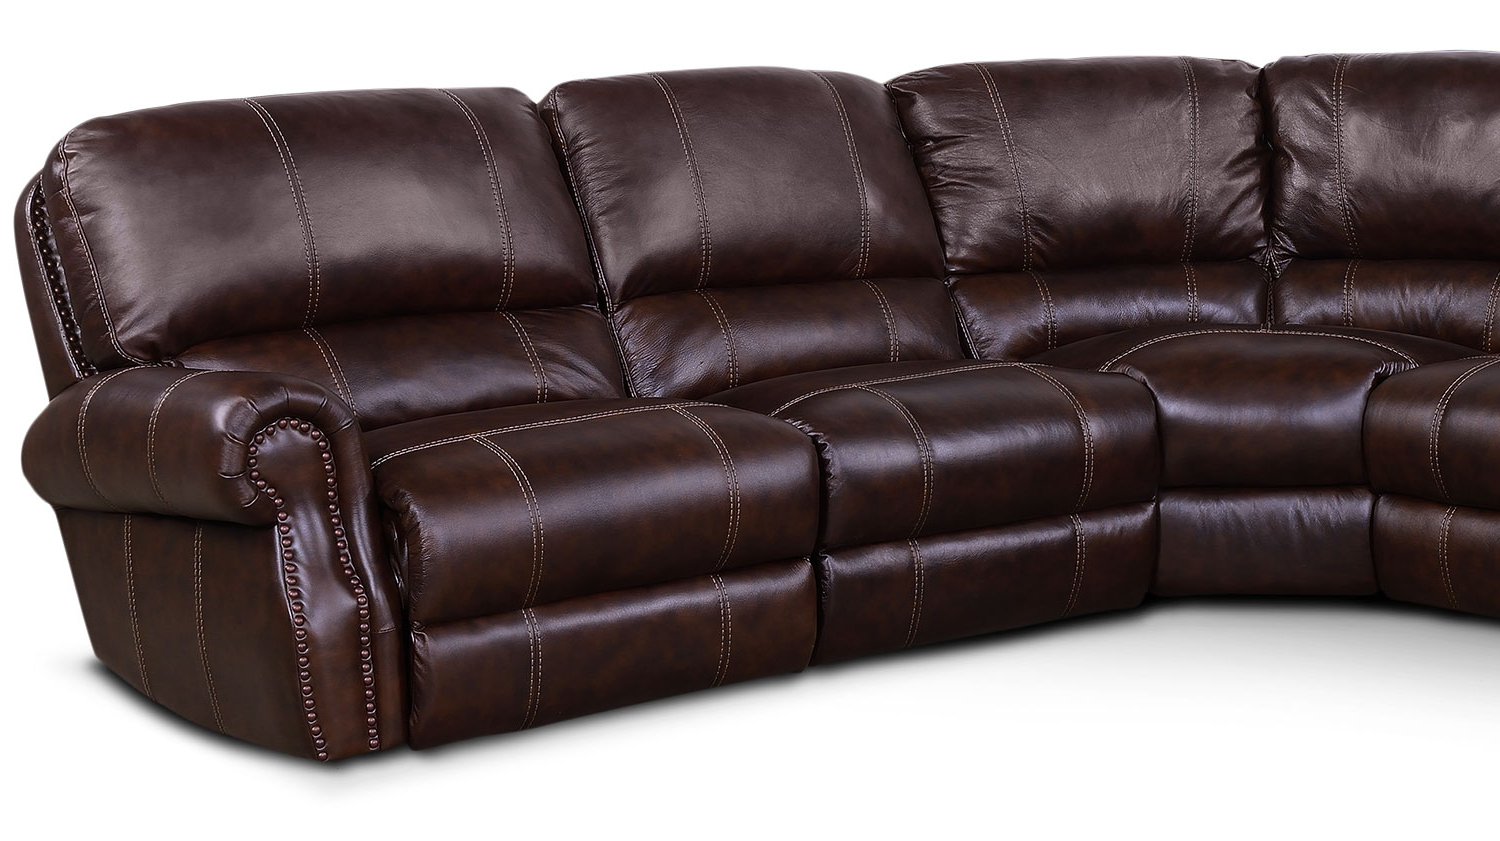 Latest Norfolk Chocolate 6 Piece Sectionals With Raf Chaise With Regard To Dartmouth 6 Piece Power Reclining Sectional With 2 Reclining Seats (View 6 of 20)